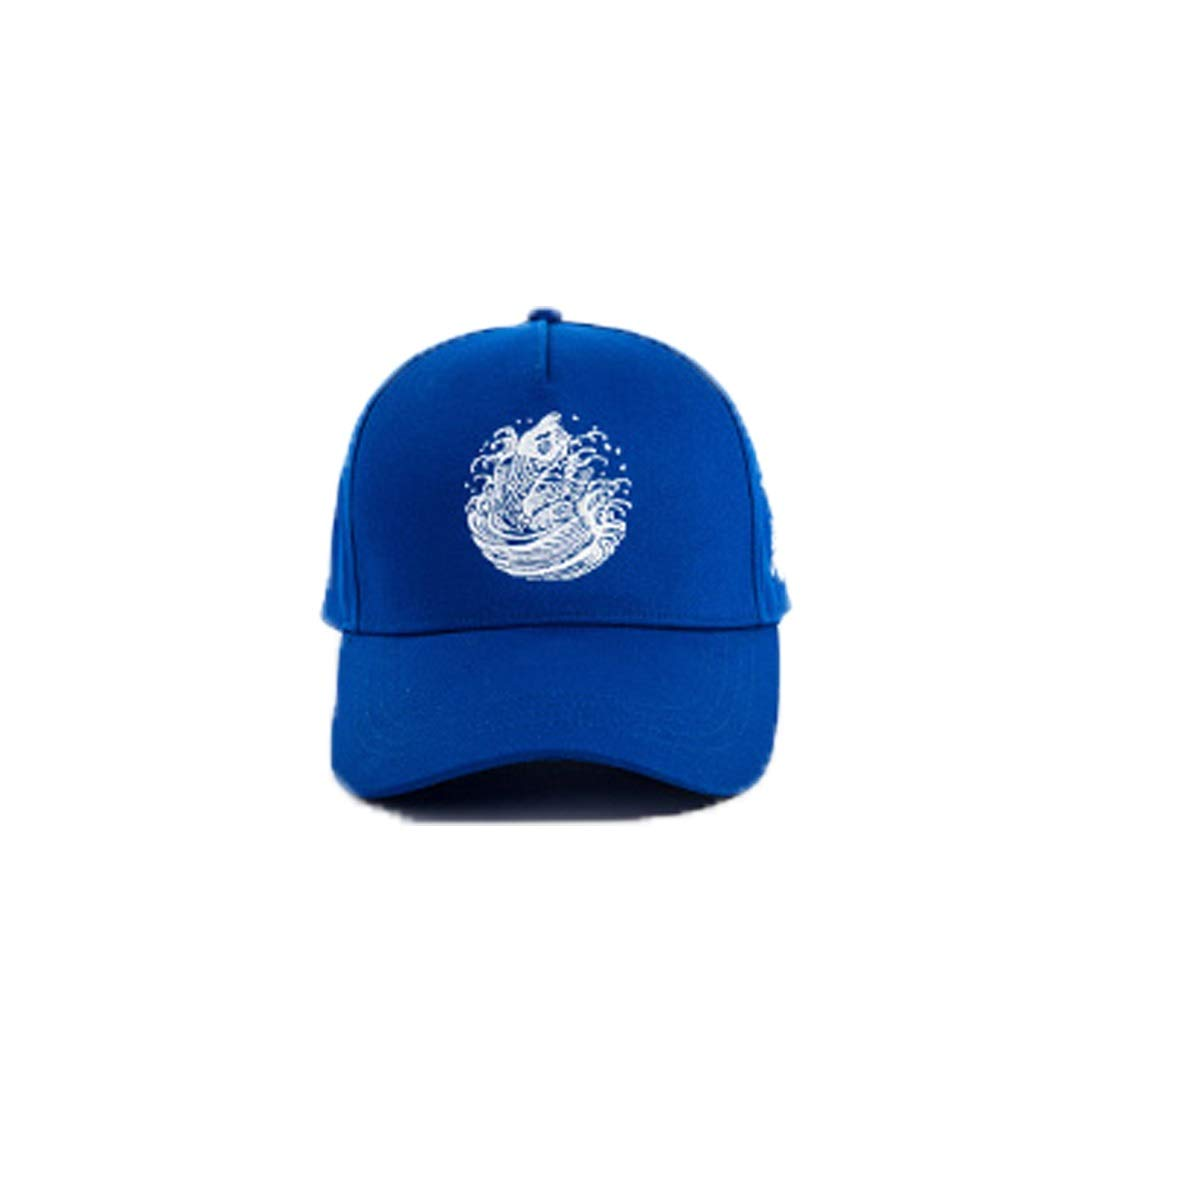 Zhongyue Hat Male Summer Cap Chinese Style Outdoor Sports Cap Casual Wild Baseball Cap, White, Blue, Black Summer hat (Color : Blue)